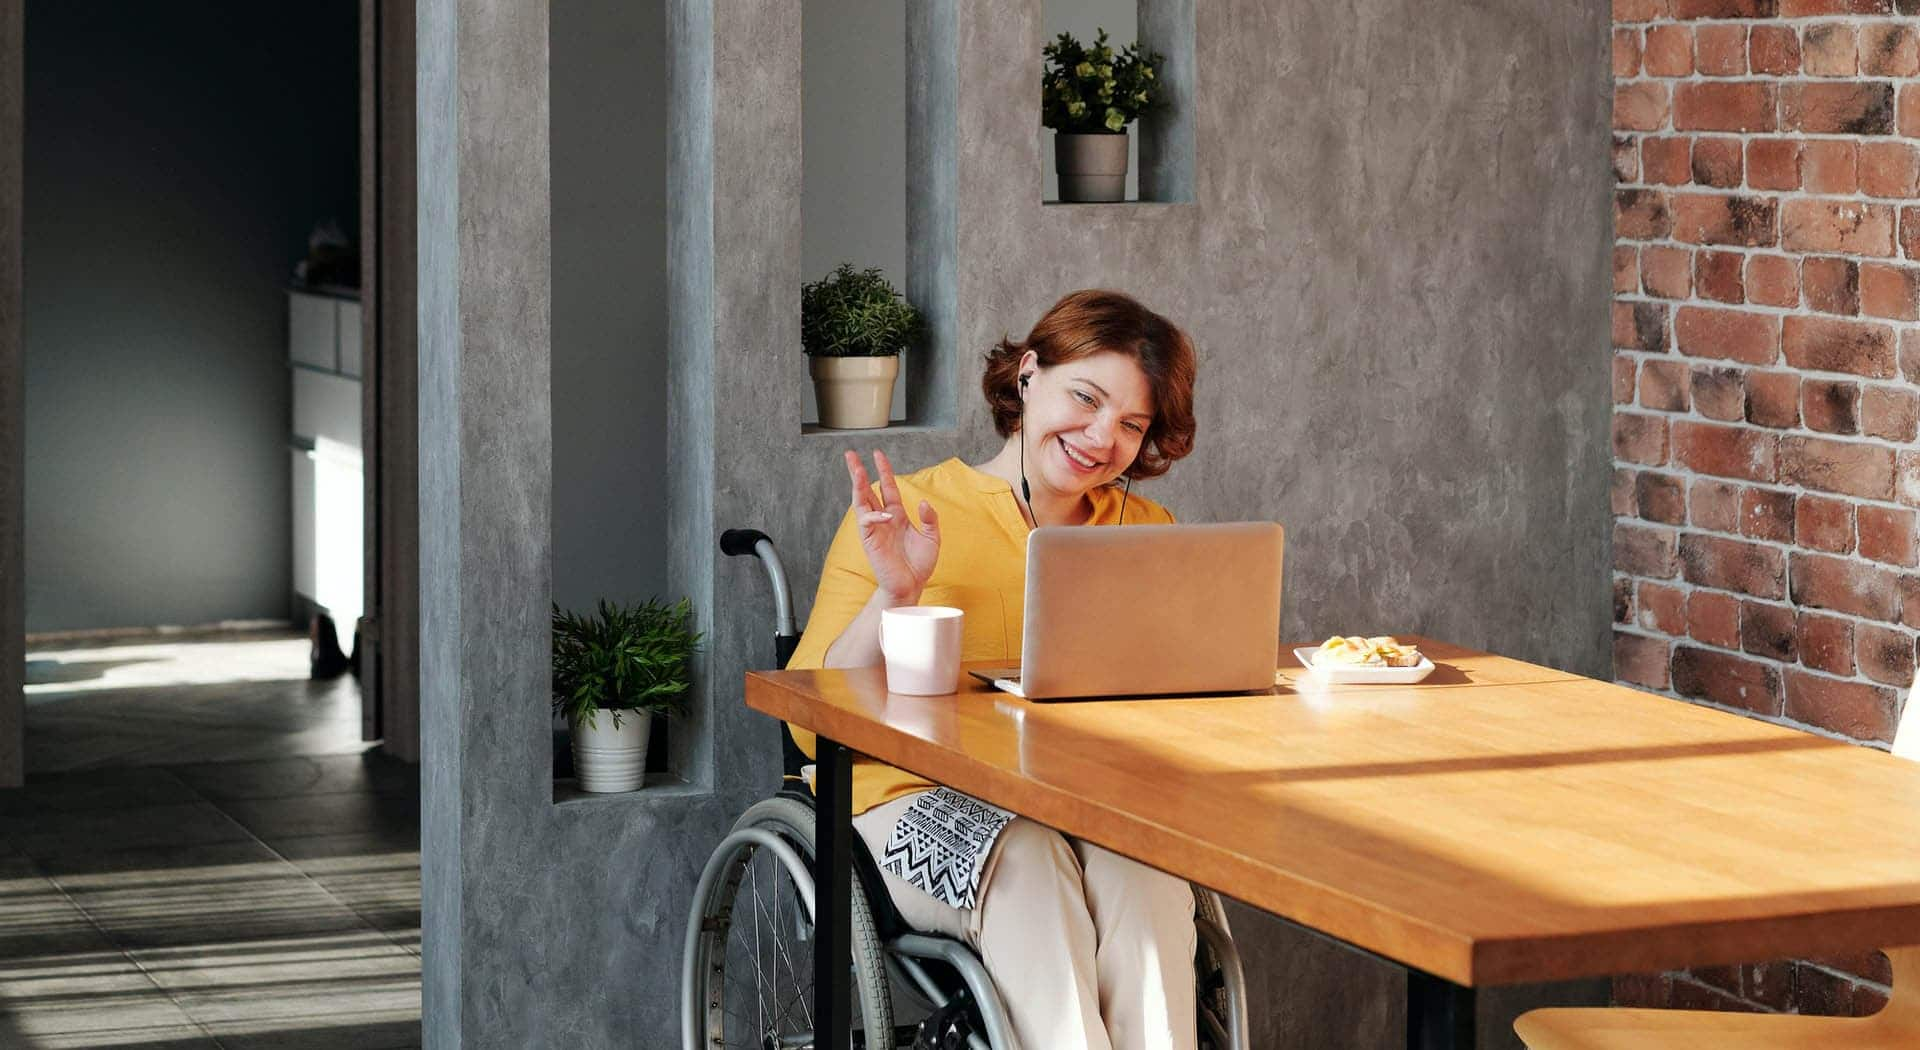 wheelchair user at table working